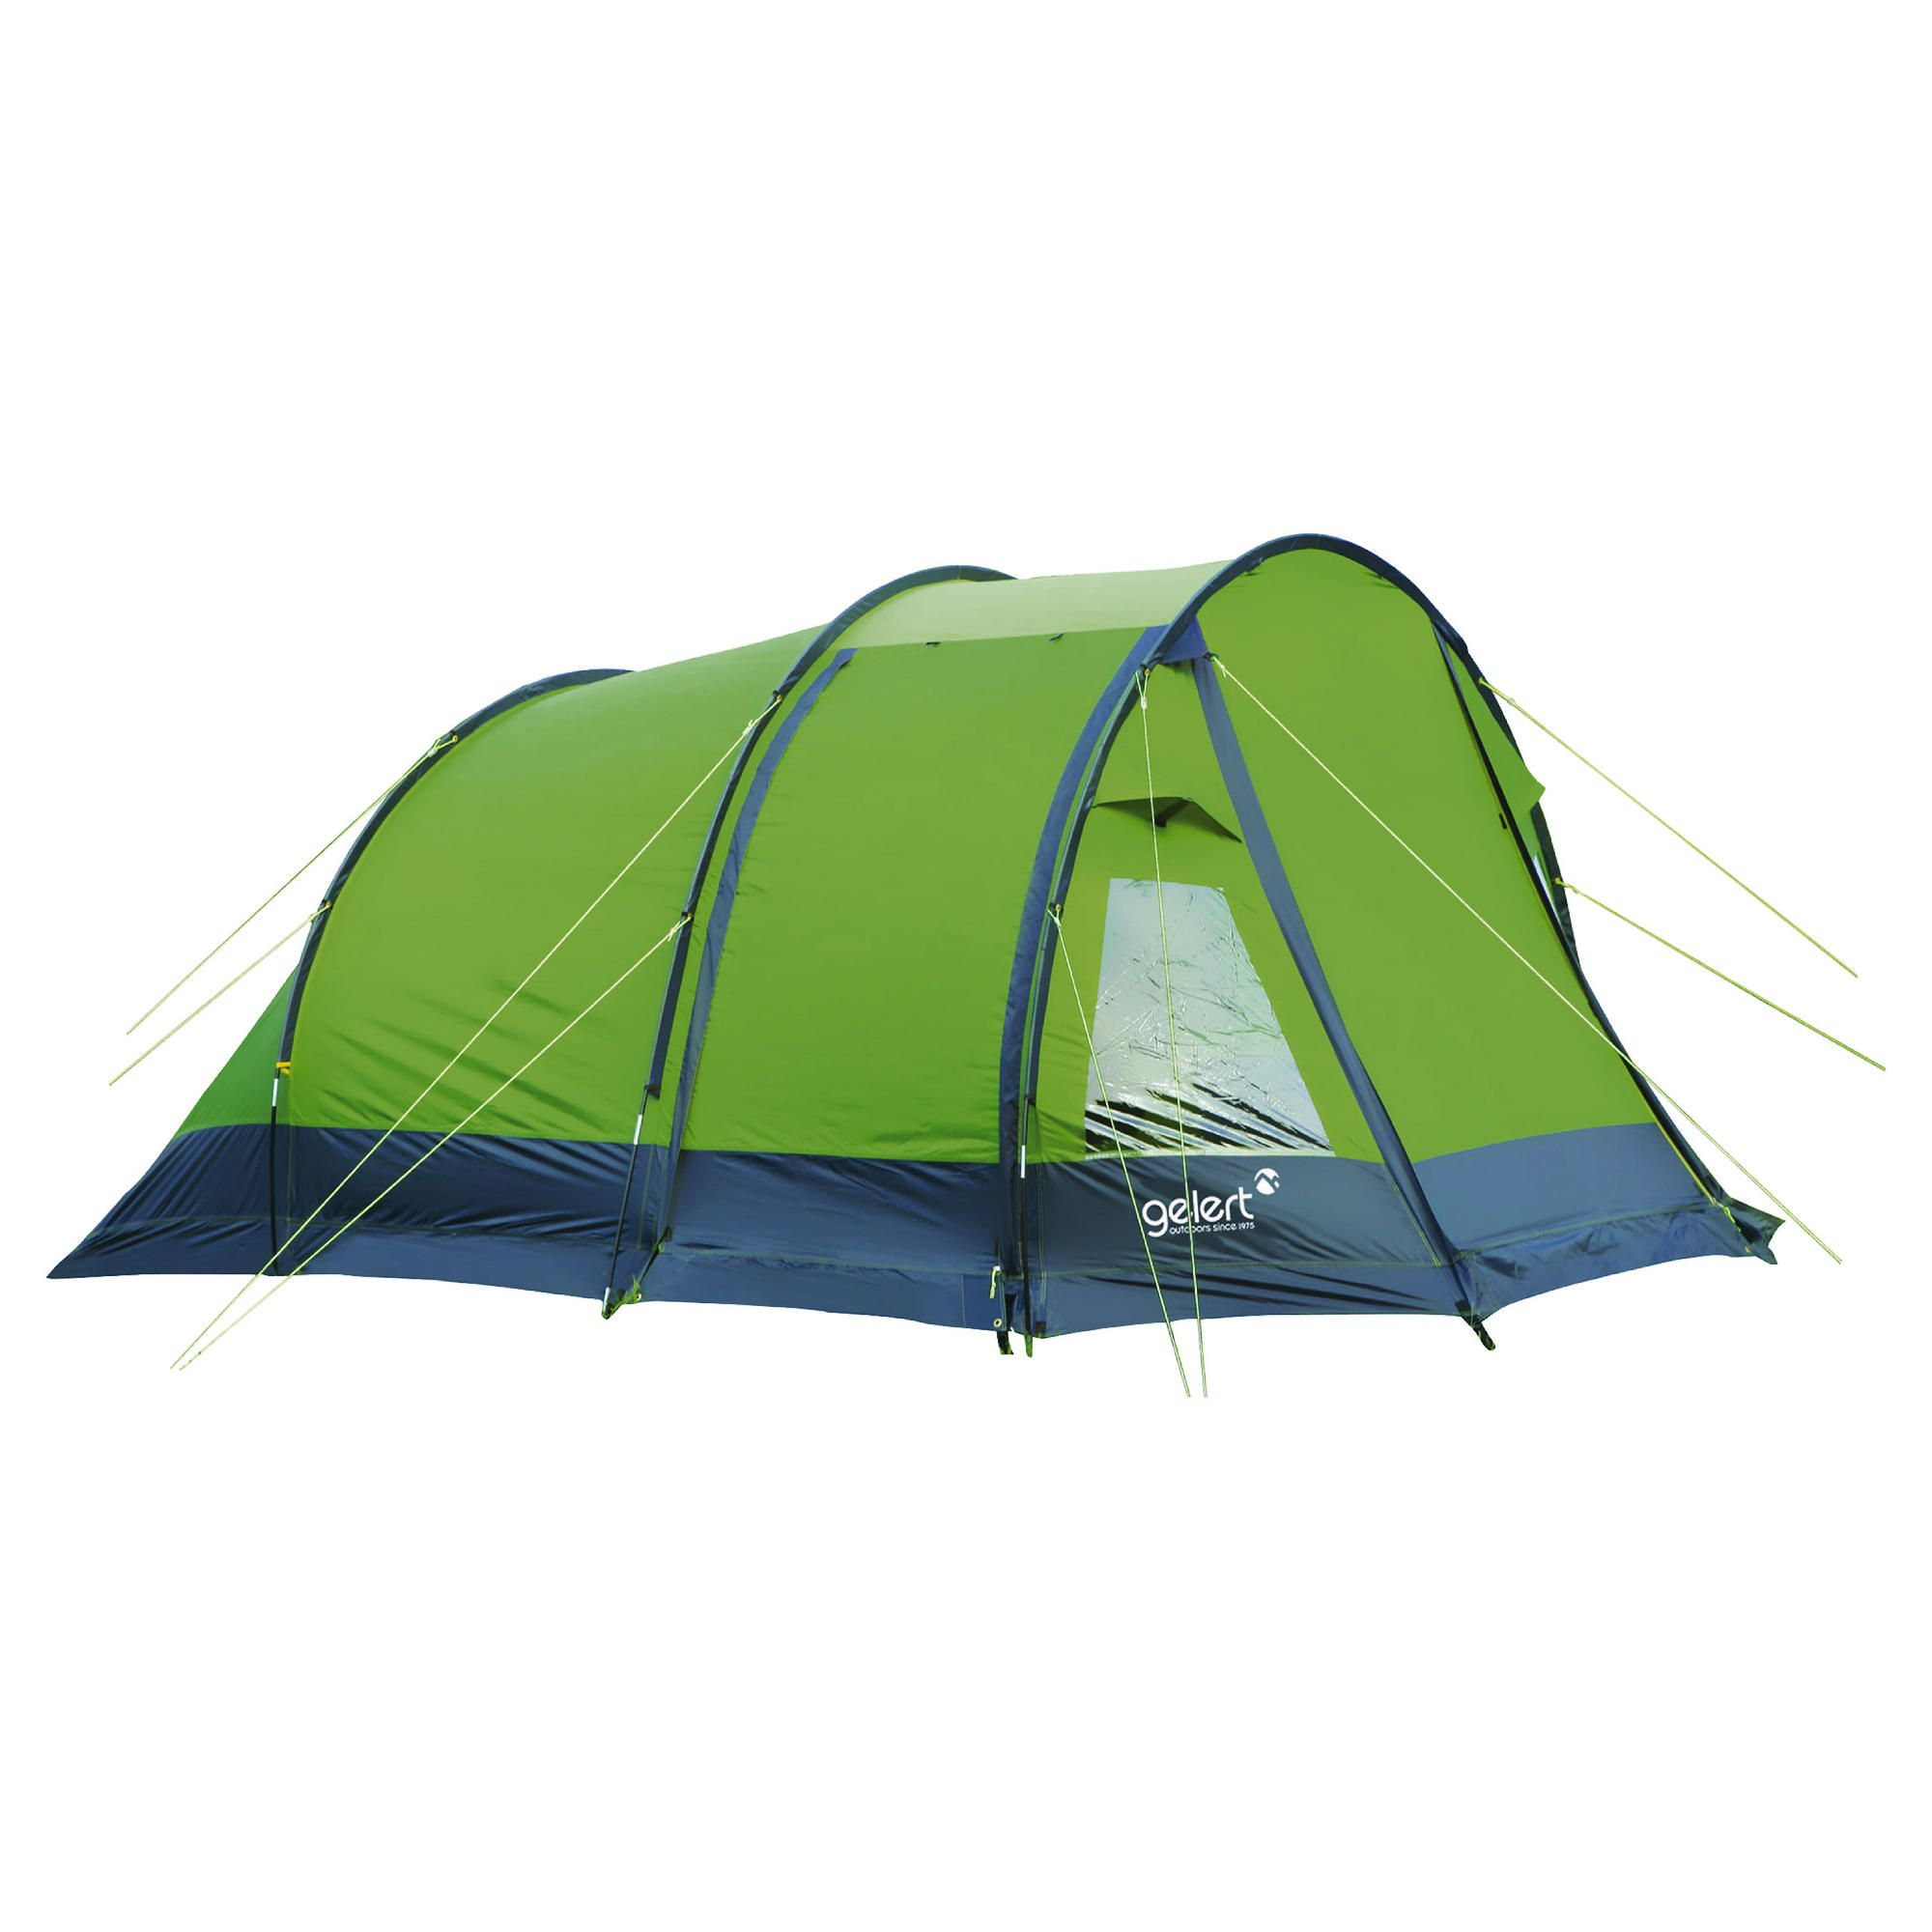 SAVE £50 Gelert Corona 6 person tent NOW £70.00 at Tesco Direct | Gratisfaction UK  sc 1 st  Gratisfaction UK & SAVE £50 Gelert Corona 6 person tent NOW £70.00 at Tesco Direct ...